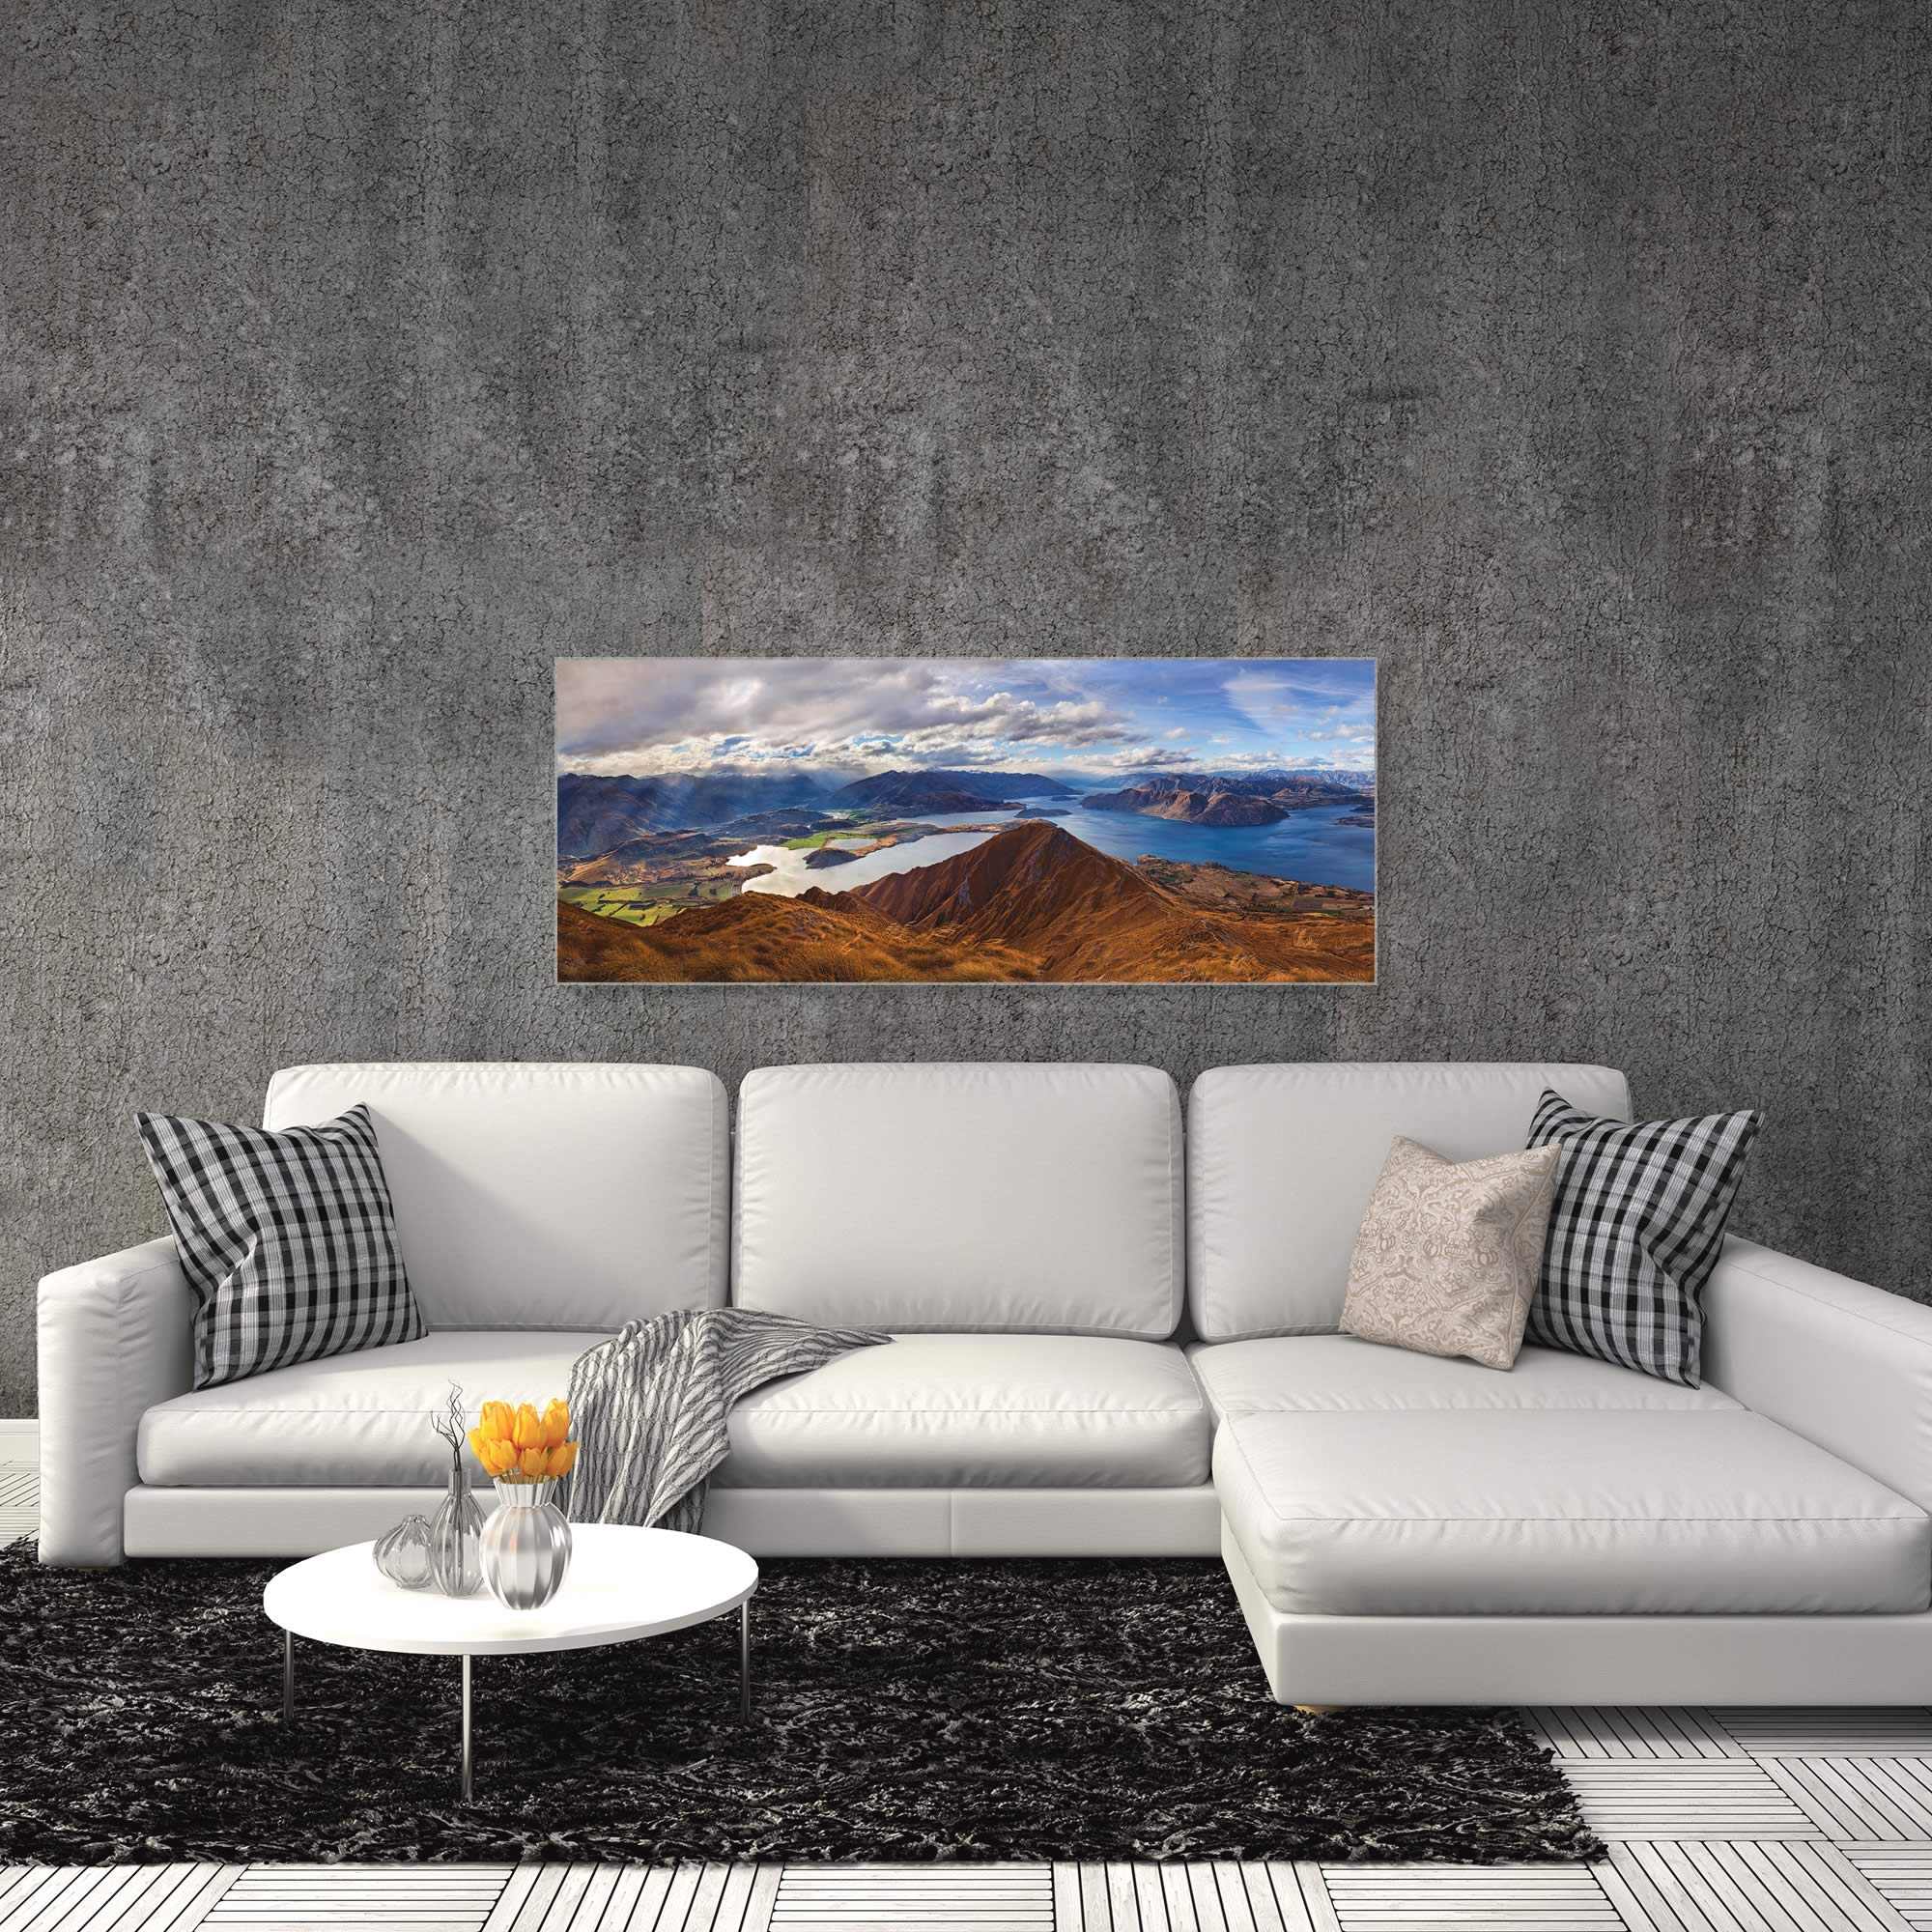 Roys Peak by Yan Zhang - Landscape Art on Metal or Acrylic - Alternate View 3